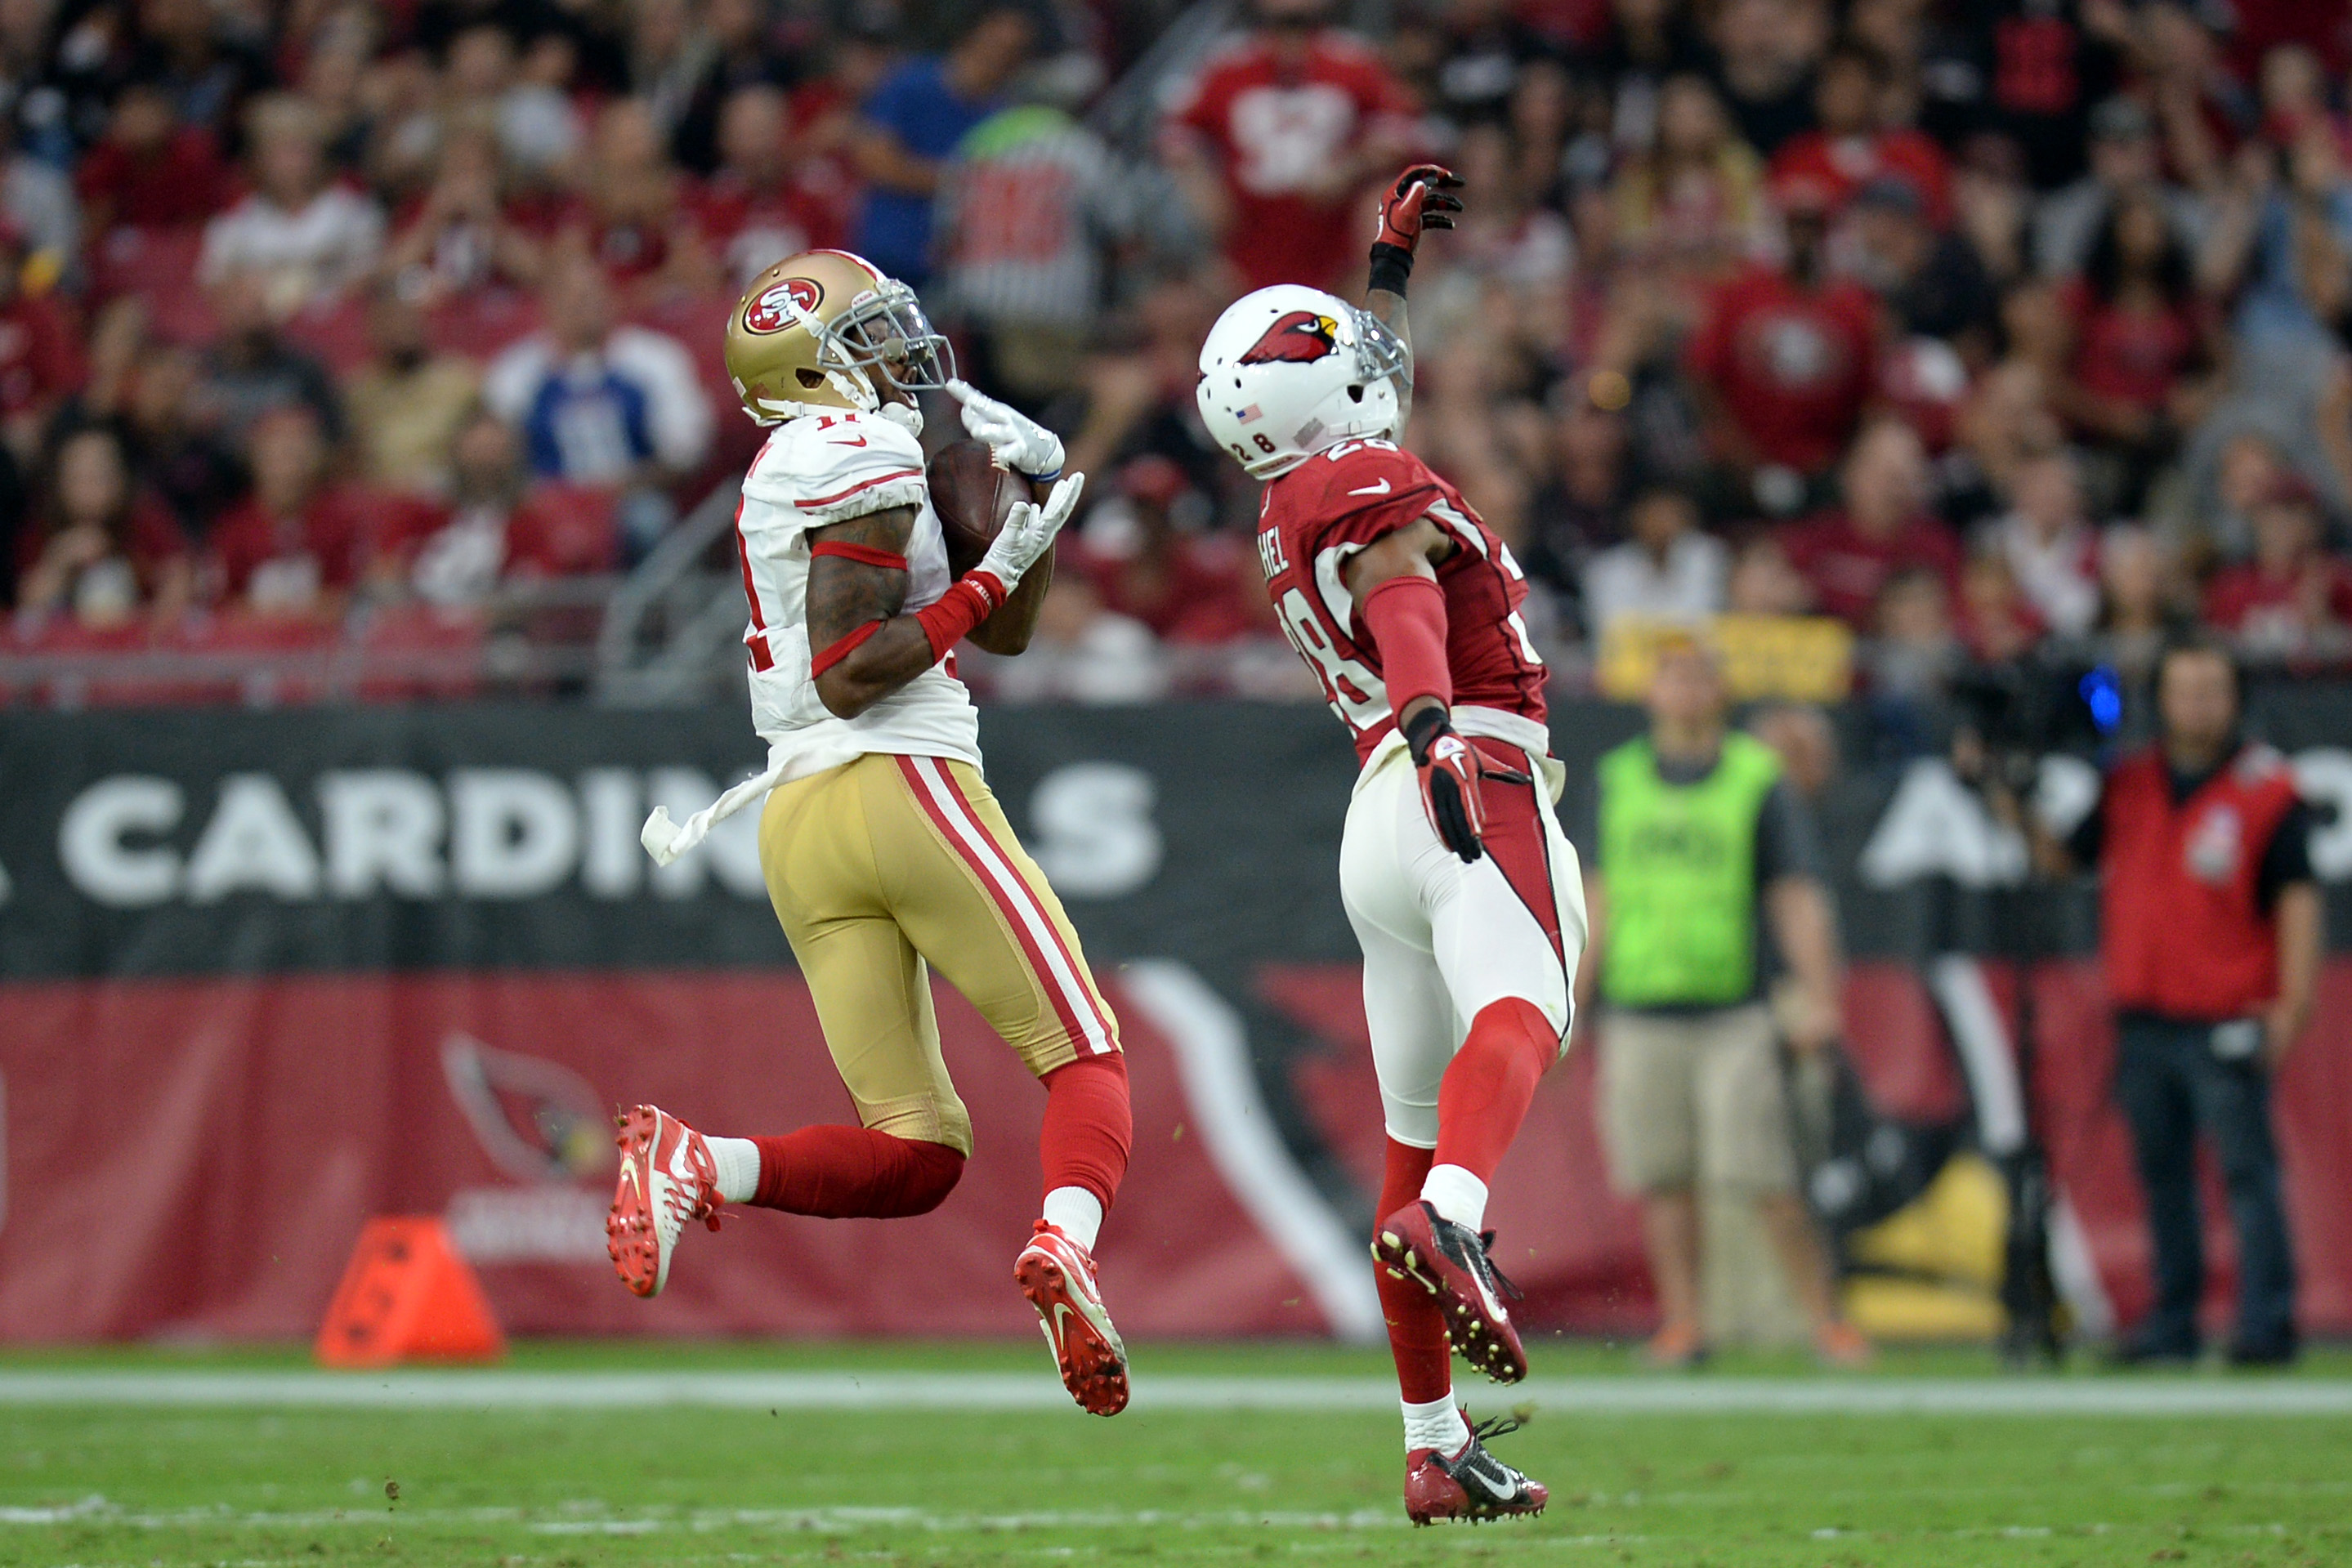 9675670-nfl-san-francisco-49ers-at-arizona-cardinals